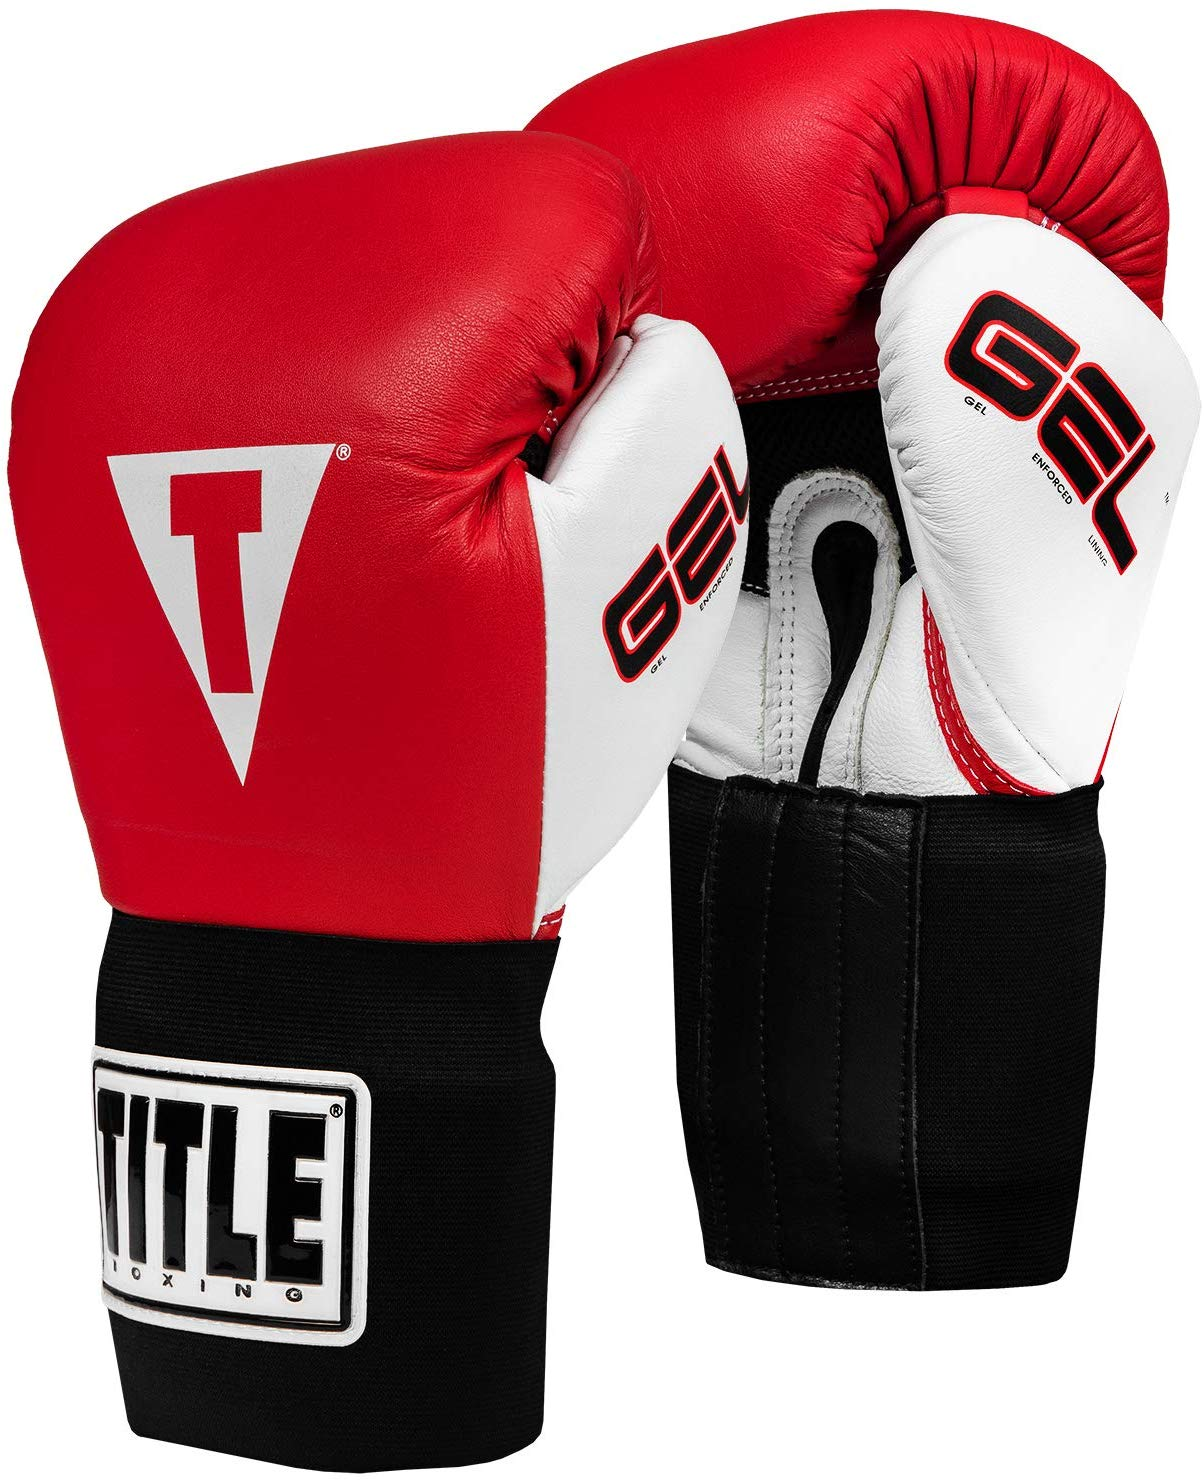 New in Bag Black//Red Title Classic Boxing Training Gloves Large